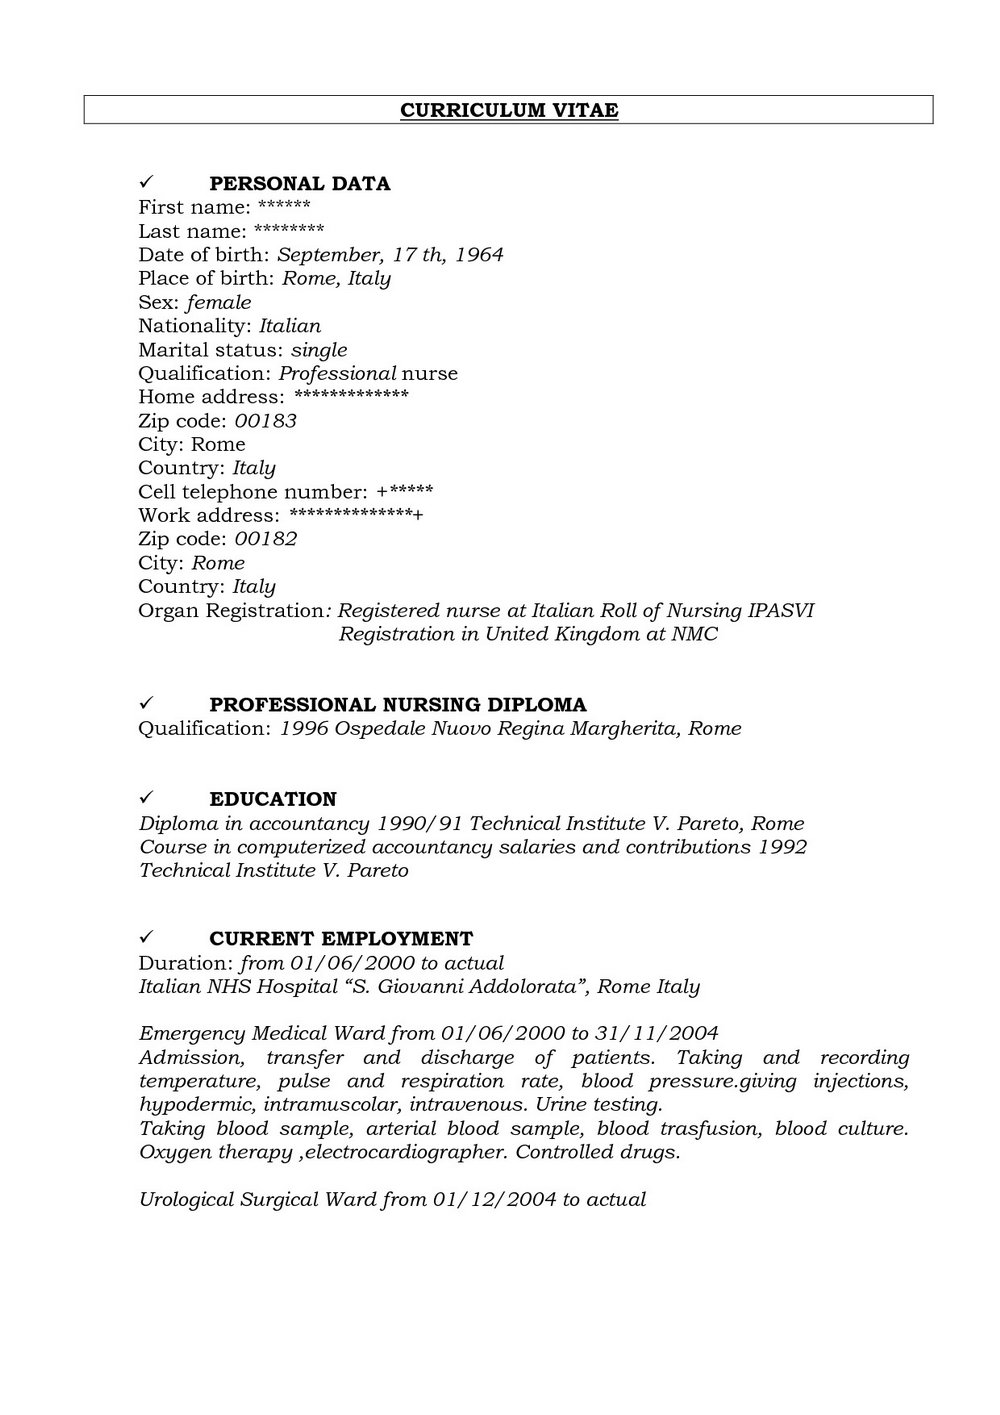 Curriculum Vitae Registered Nurse Sample